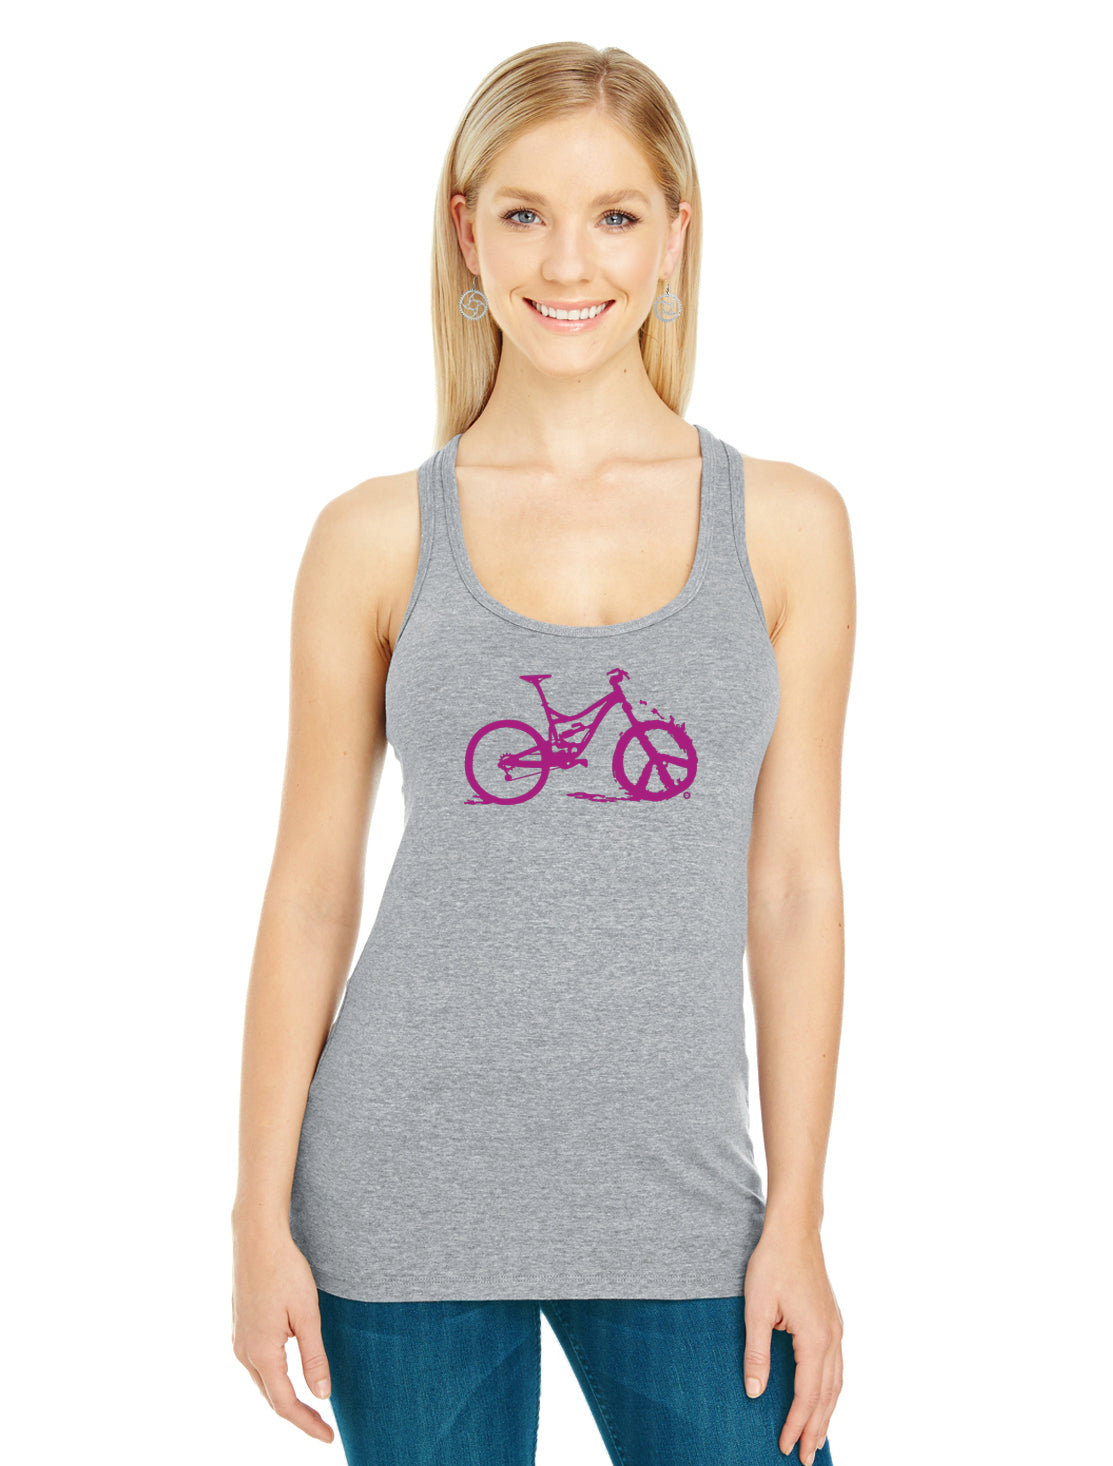 Peace Wheel Tank Top - Electric Orchid by Bici Bits